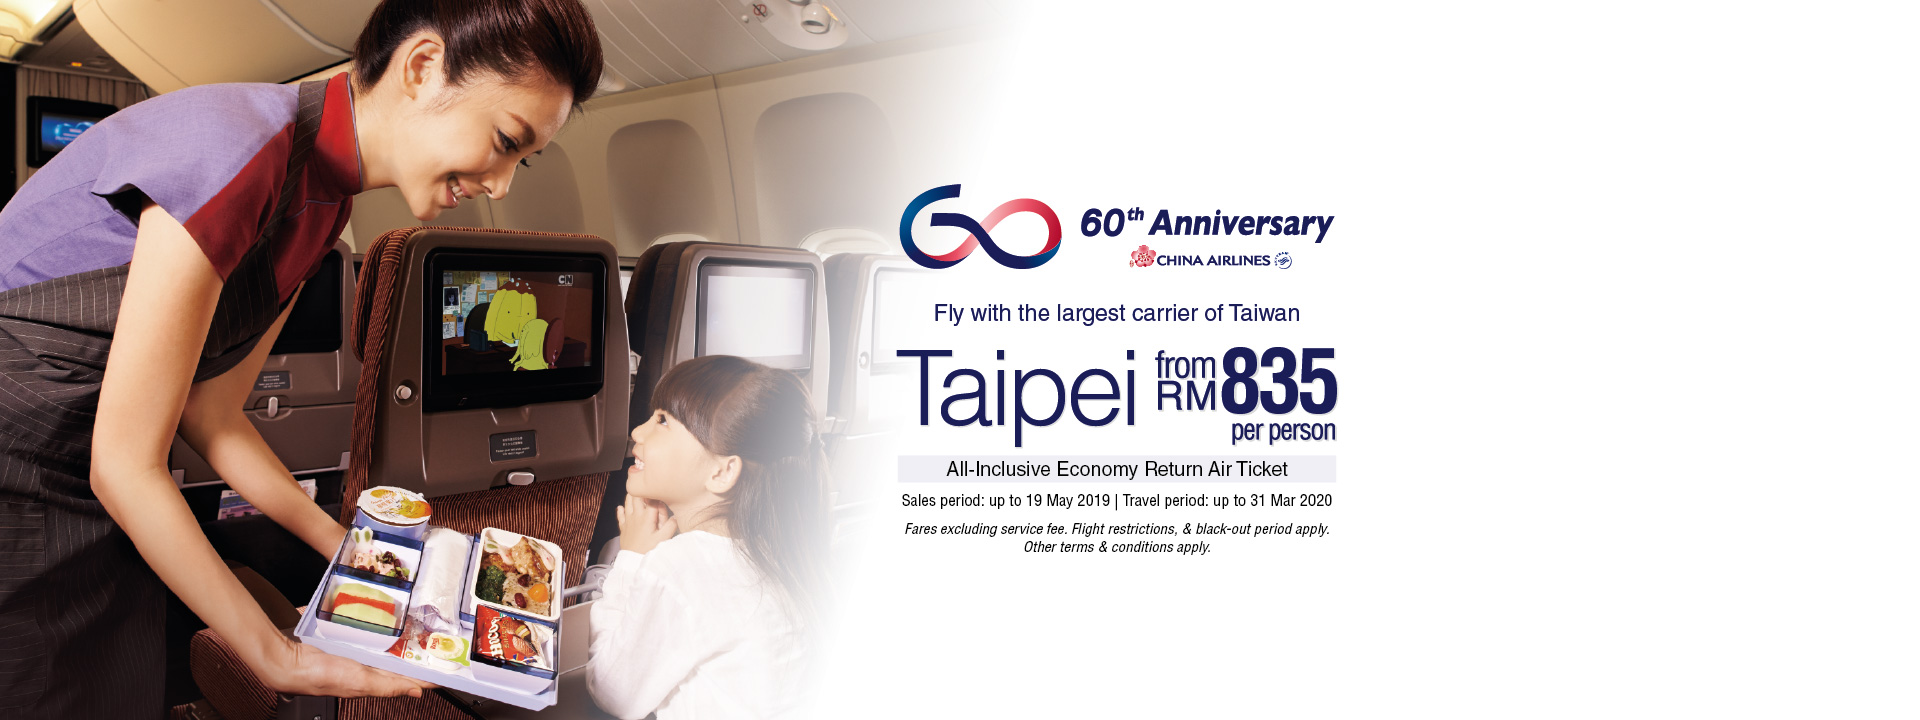 Corporate Information Travel ( 7 Mar 19 ) CI 60anni WB19May